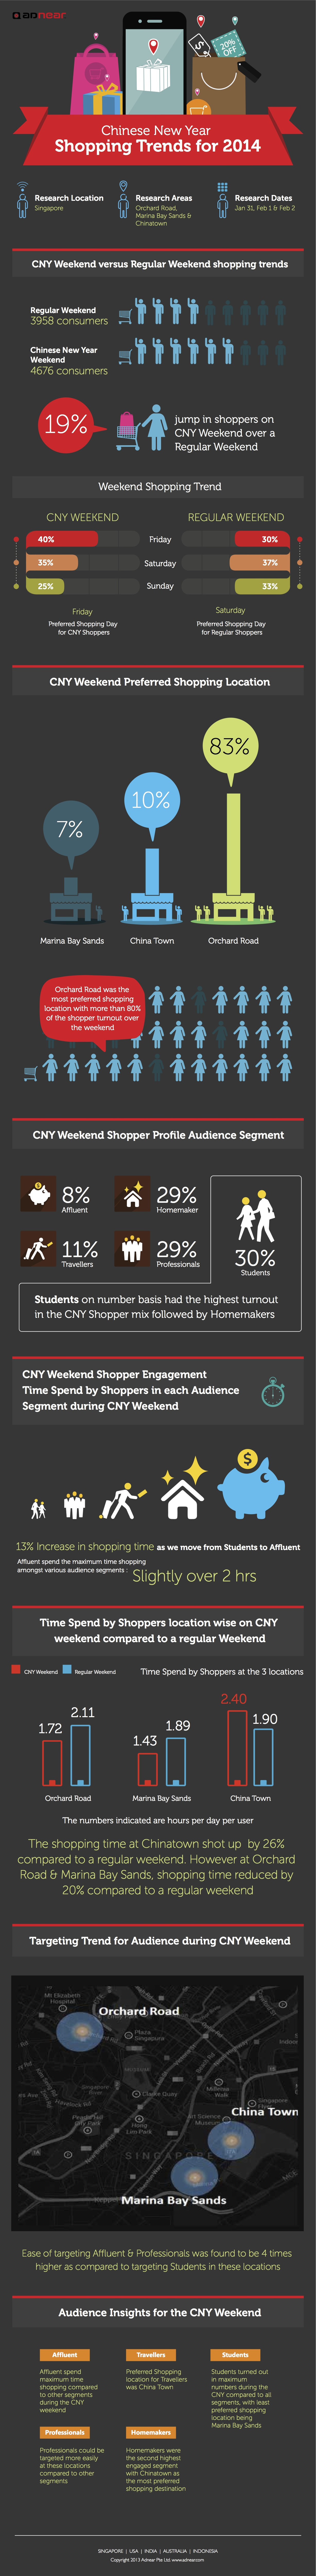 Chinese New Year trends infographic retail 2014